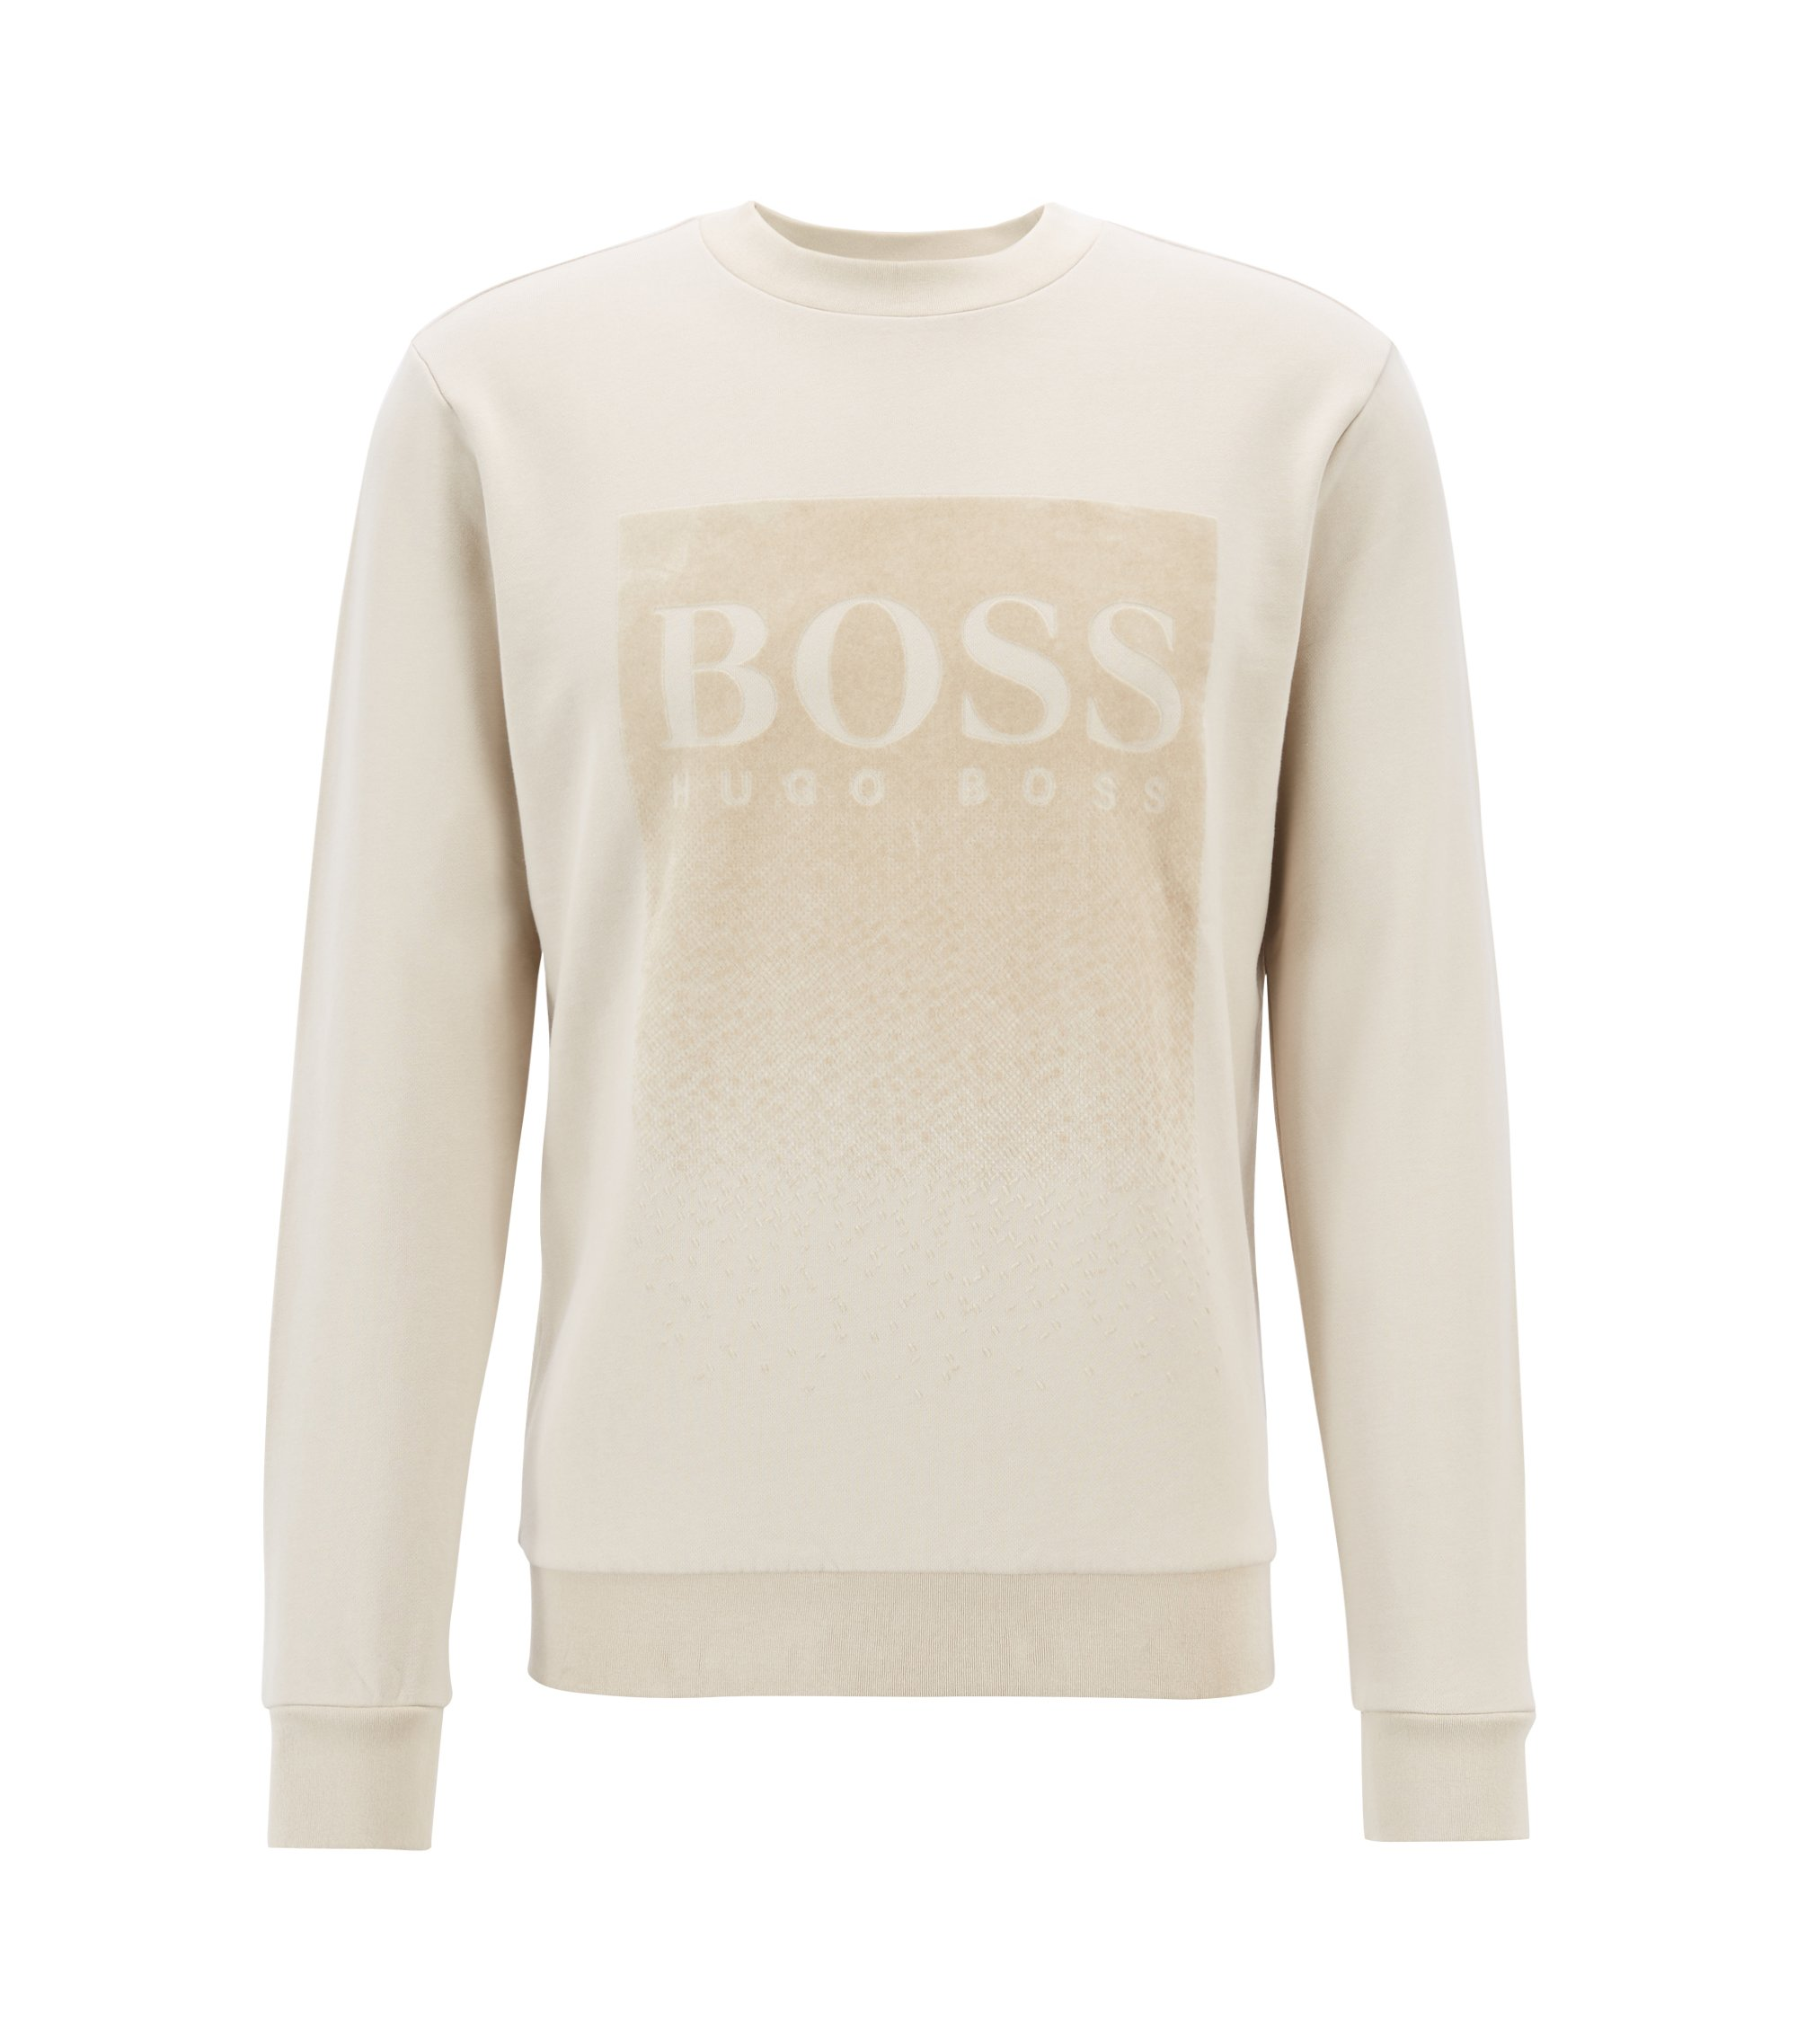 French-terry sweatshirt with flocked logo print, Light Beige